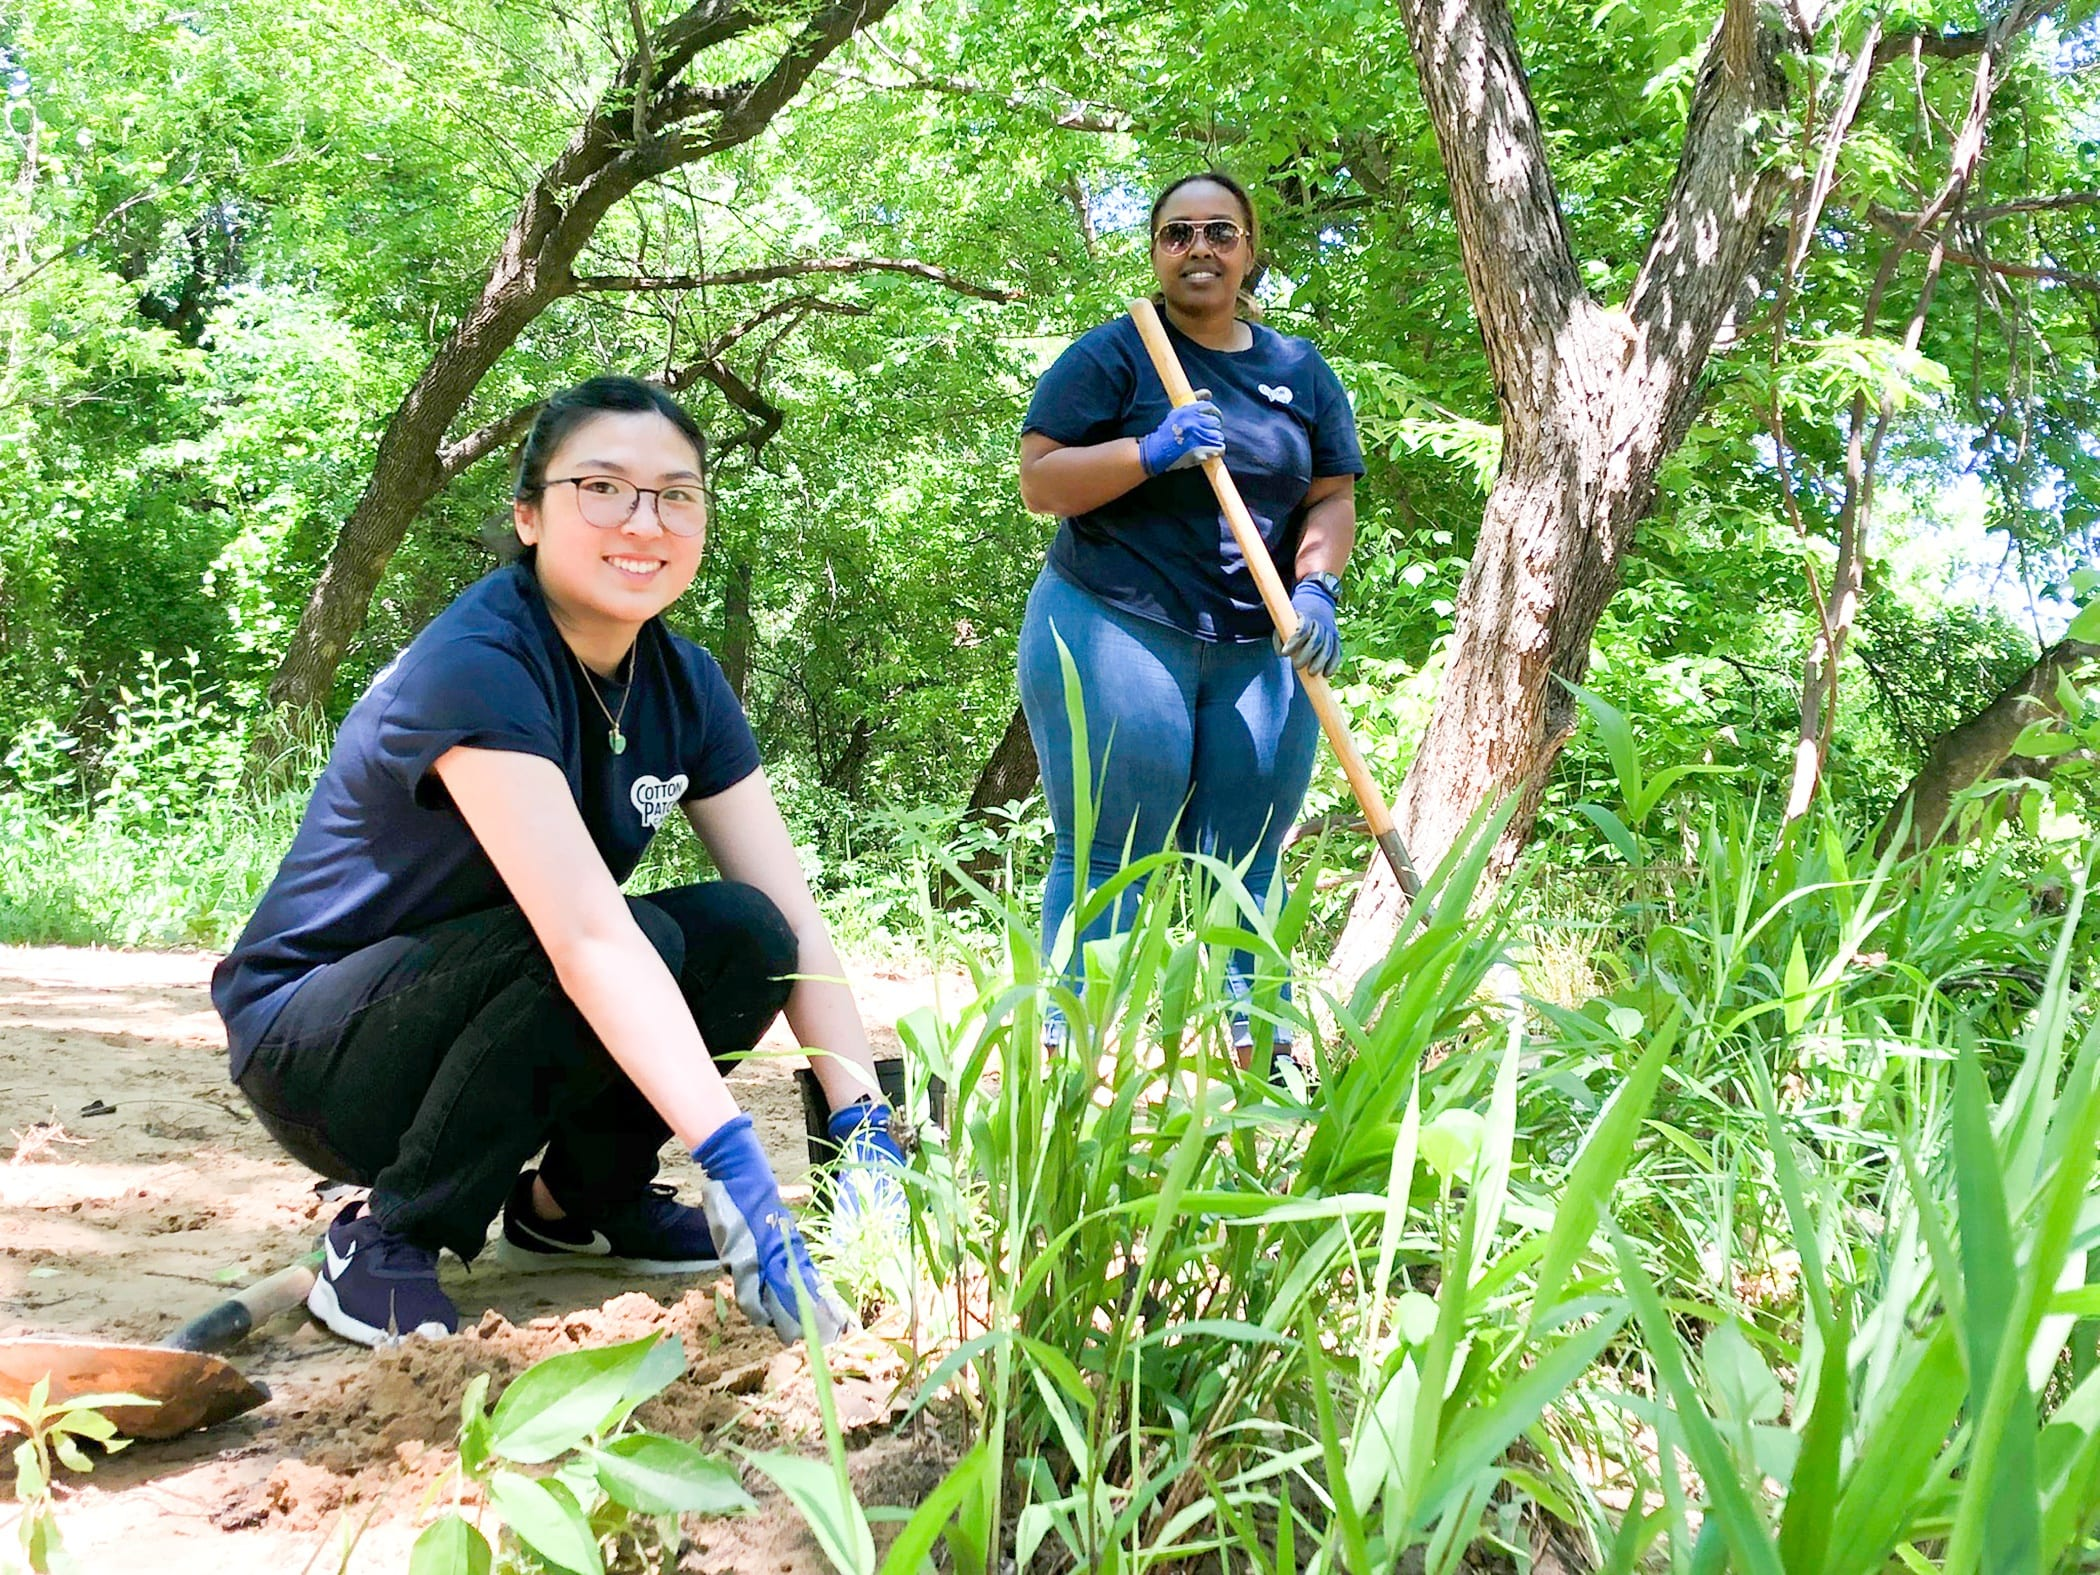 Volunteering in Grapevine: How to Get Involved in Your Community